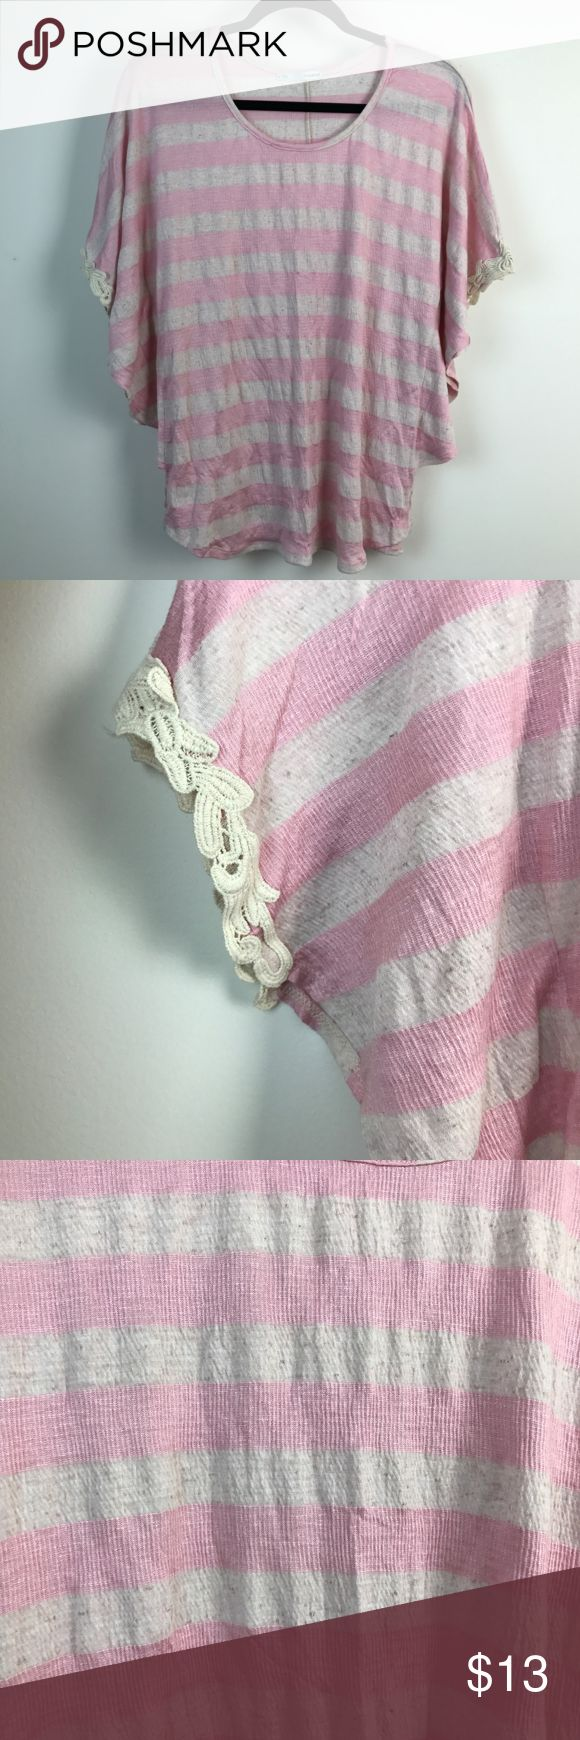 """Maurices Pink Striped Soft Batwing Knit Top XL Maurices Women's Cream Pink Striped Soft Batwing Sleeve Casual Knit Top XL   Gently Worn, Excellent Condition!    Please refer to pictures for additional condition information and if you have any other questions about this item please feel free to ask!  Measurements Laying Flat: Length: 23 1/2"""" Armpit to Armpit: 18 1/2"""" Sleeve Length: 5 1/2"""" Maurices Tops Tees - Short Sleeve"""